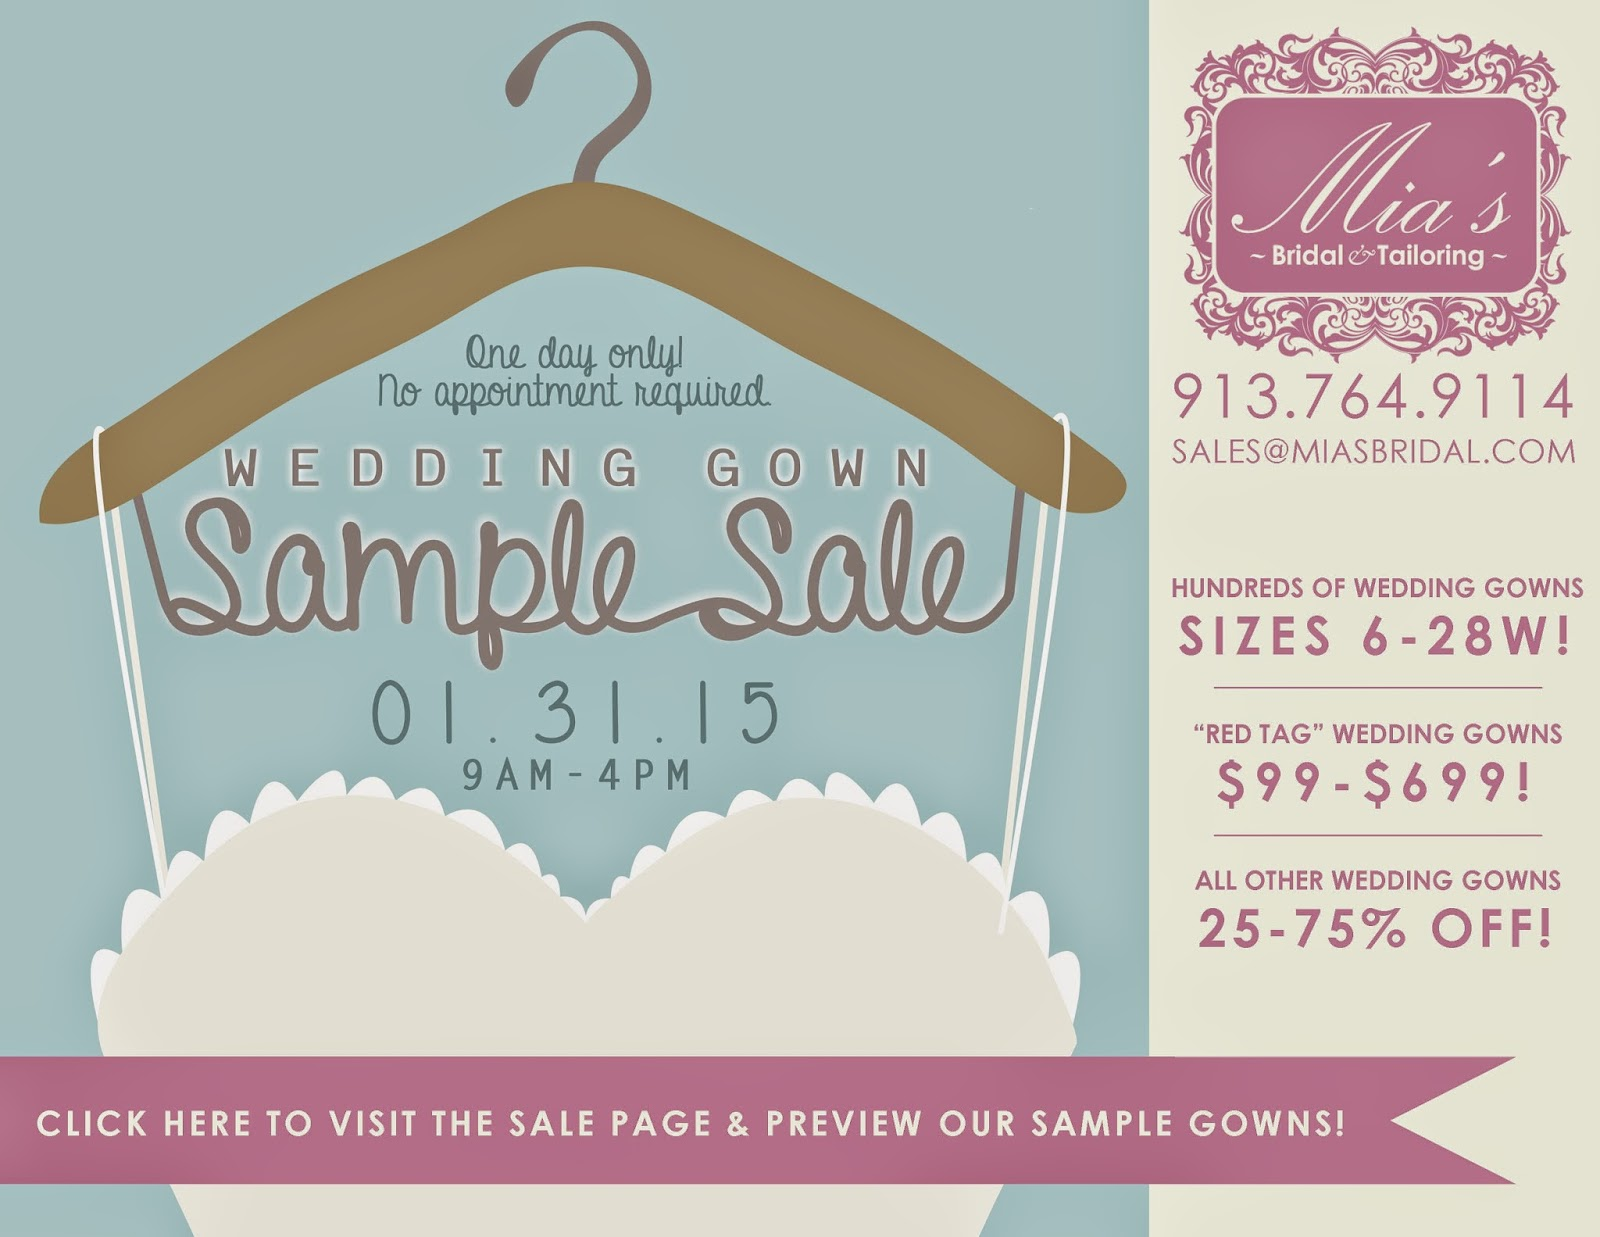 Click here to visit our Sale Page & preview the sample gowns!